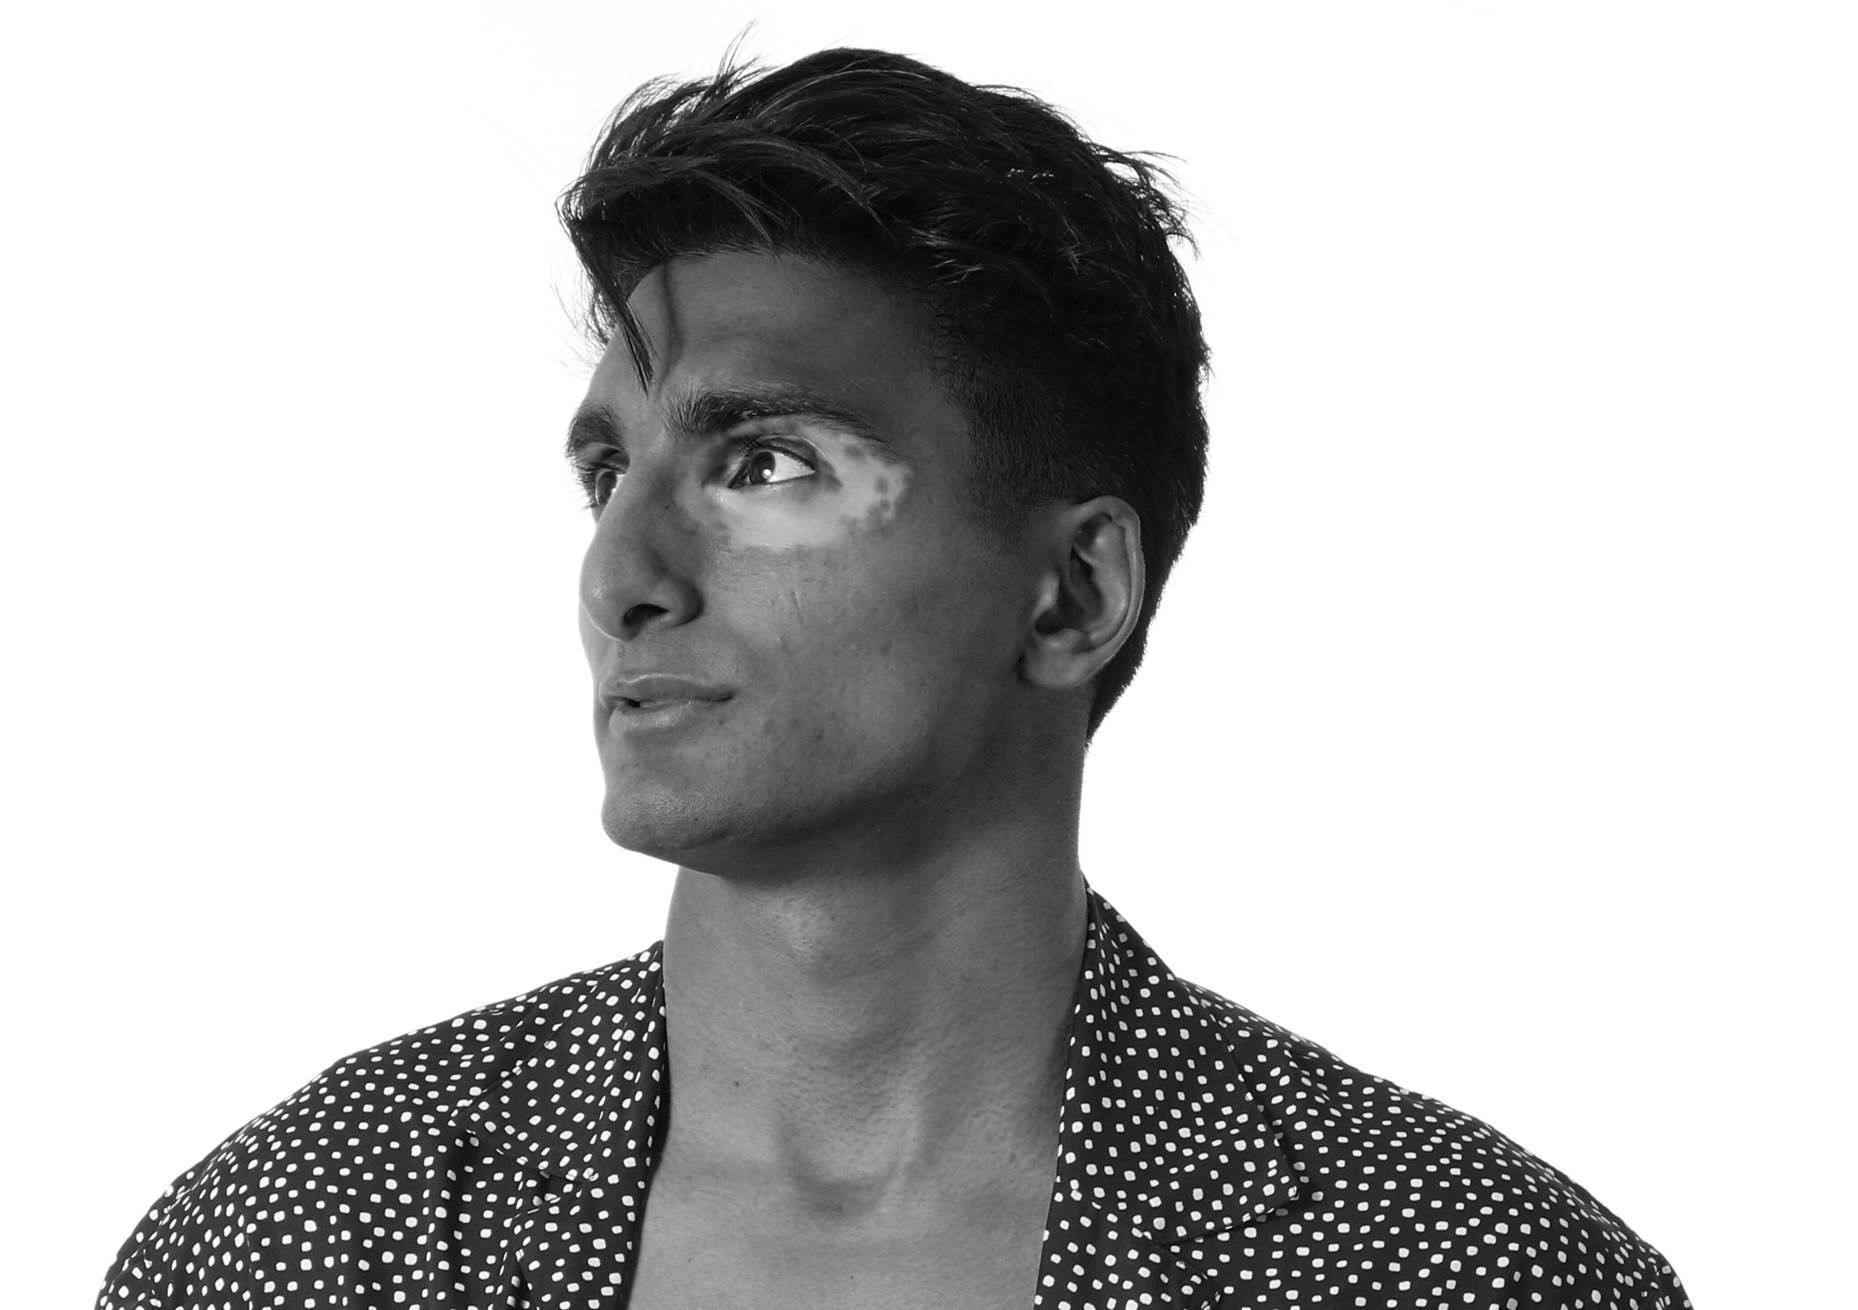 A man who has vitiligo around his eye looks to the left of camera. He is wearing a polka dot shirt and has dark hair.